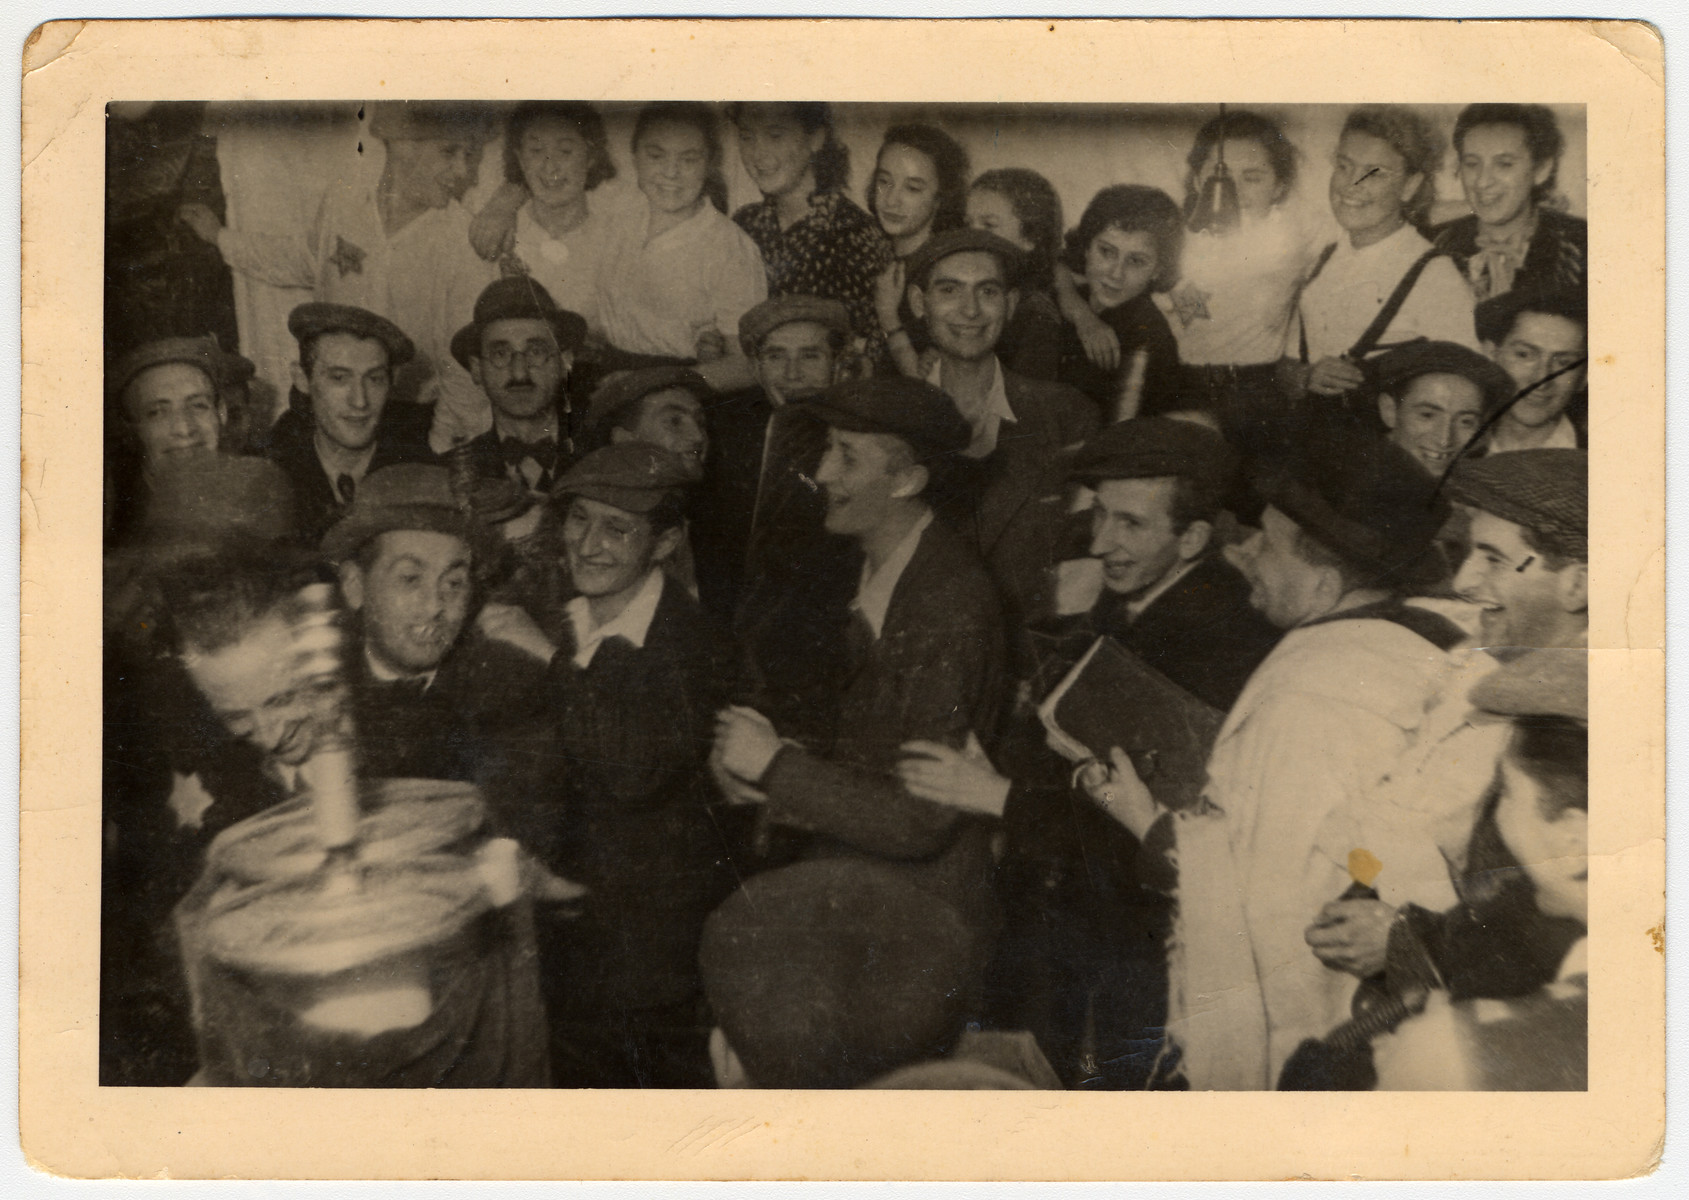 Members of Hanoar Hatzioni, a Zionist youth movement, dance with Torah scrolls in celebration of the Jewish holiday, Simchat Torah,  in the Lodz ghetto.  This was the ghetto's final Simchat Torah celebration.  Pictured from left to right are: Chaim Nata Widawski (perished), Baruch Praszker, Mosze Balzam (age 23, perished), Henryk Bergman (age 20, survived), Josef Lewin (age 23, perished), Najman (age 40) and Marek Margulis (age 21, survived). Second row from left to right are: unknown, Wiktor Sztajn (age 23, survived), Majlech Sziper (age 40), unknown, unknown, and Matatiahu Kohen (age 20, survived). Rozka Grosman (age 21, survived), Mendel Grosman's sister, is pictured second from right in the top row.  Also pictured in the rear are Bronka Zaks (age 21, survived), Menek-Menachem Grossman (age 23), Zosia-Shoshana Grosman (age 20), Shmuel Ginat (age 18, survived).